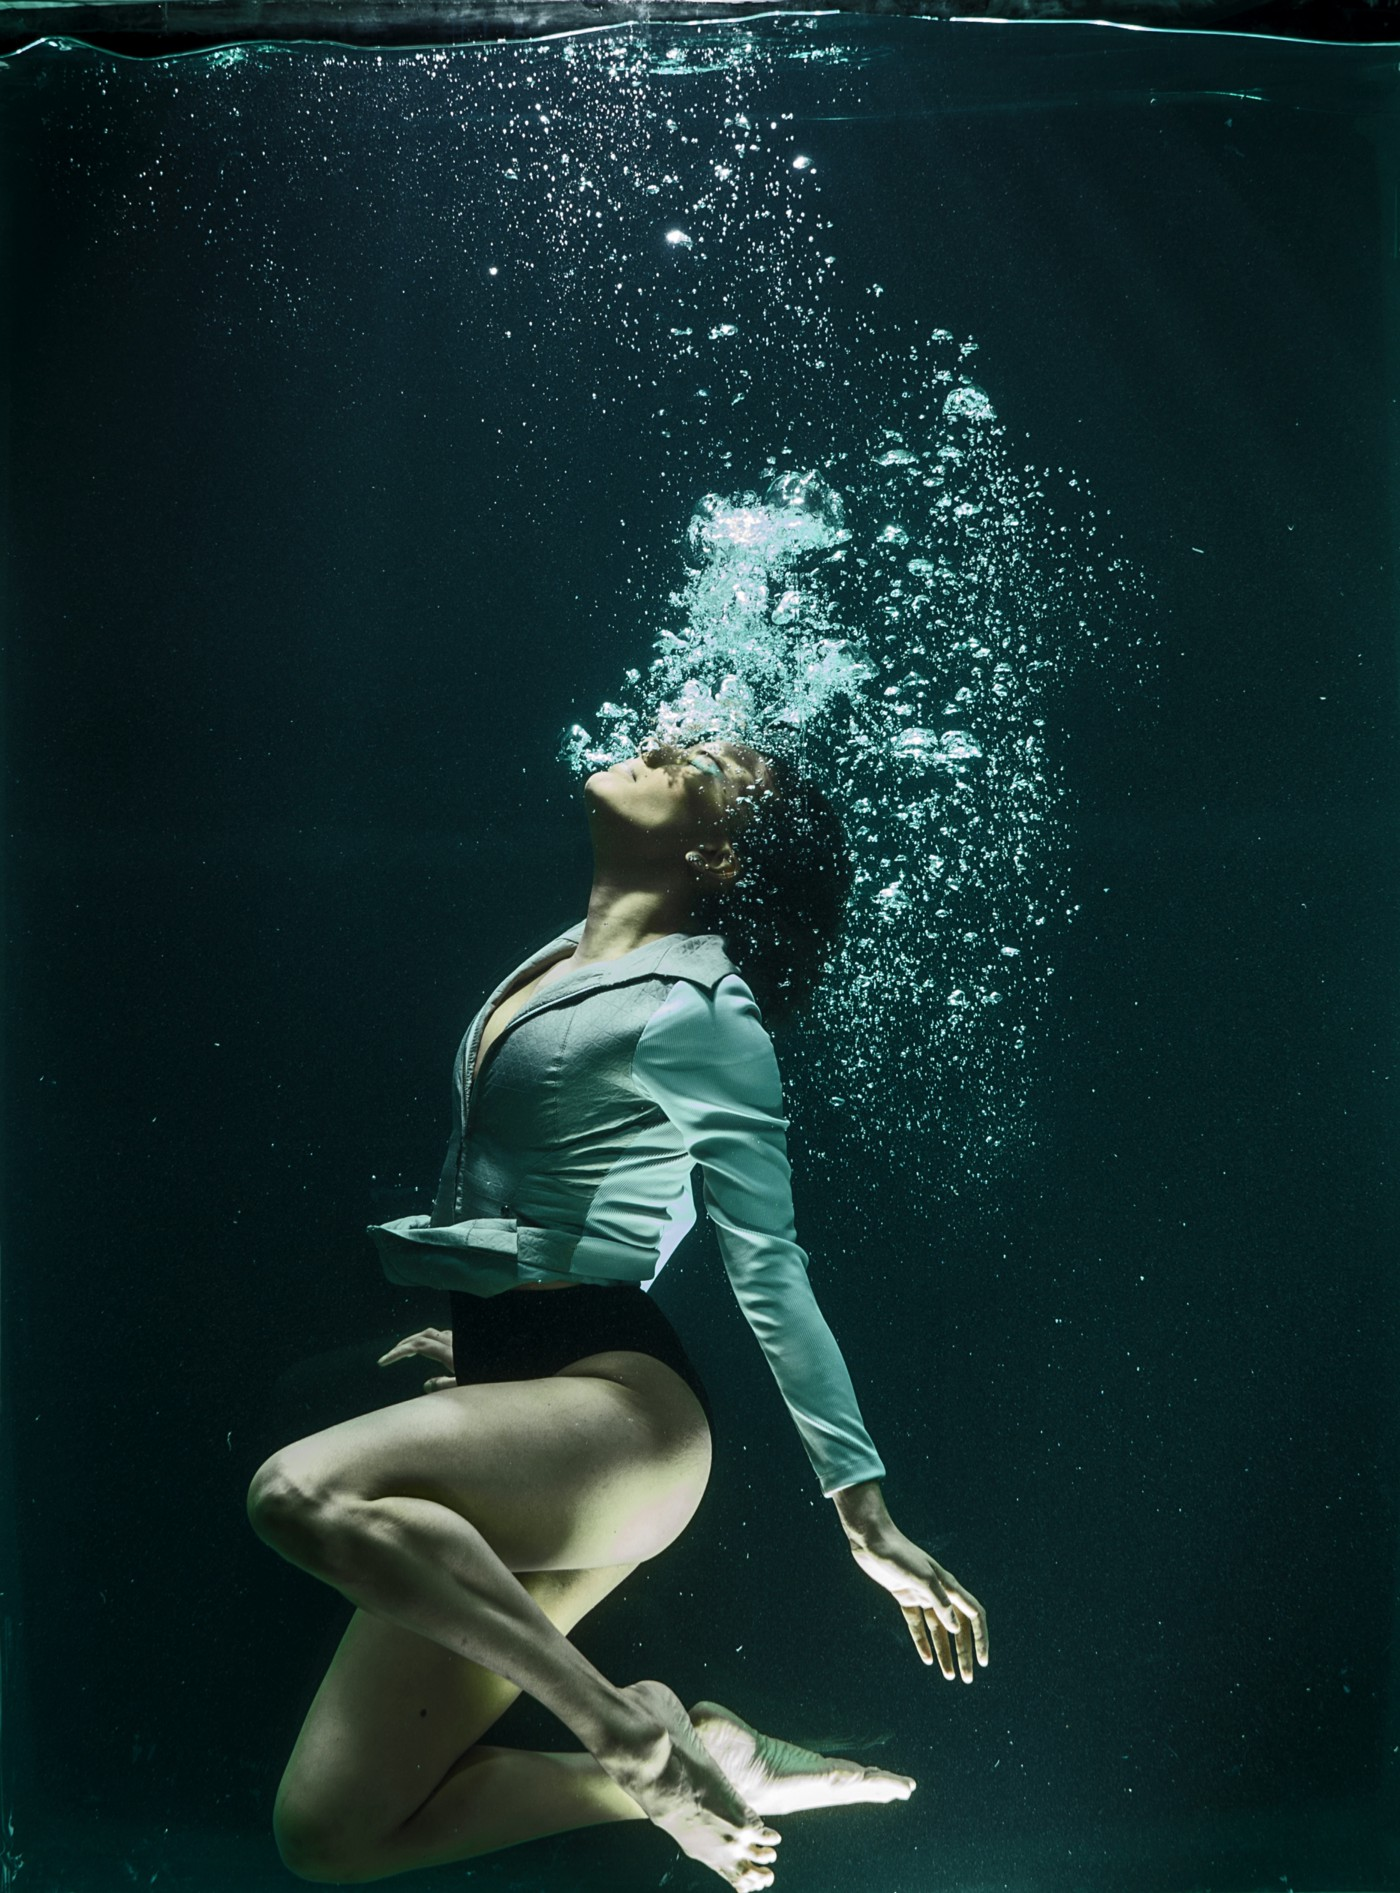 Woman under water, bubbles coming from her mouth. Dark, vertical photo.